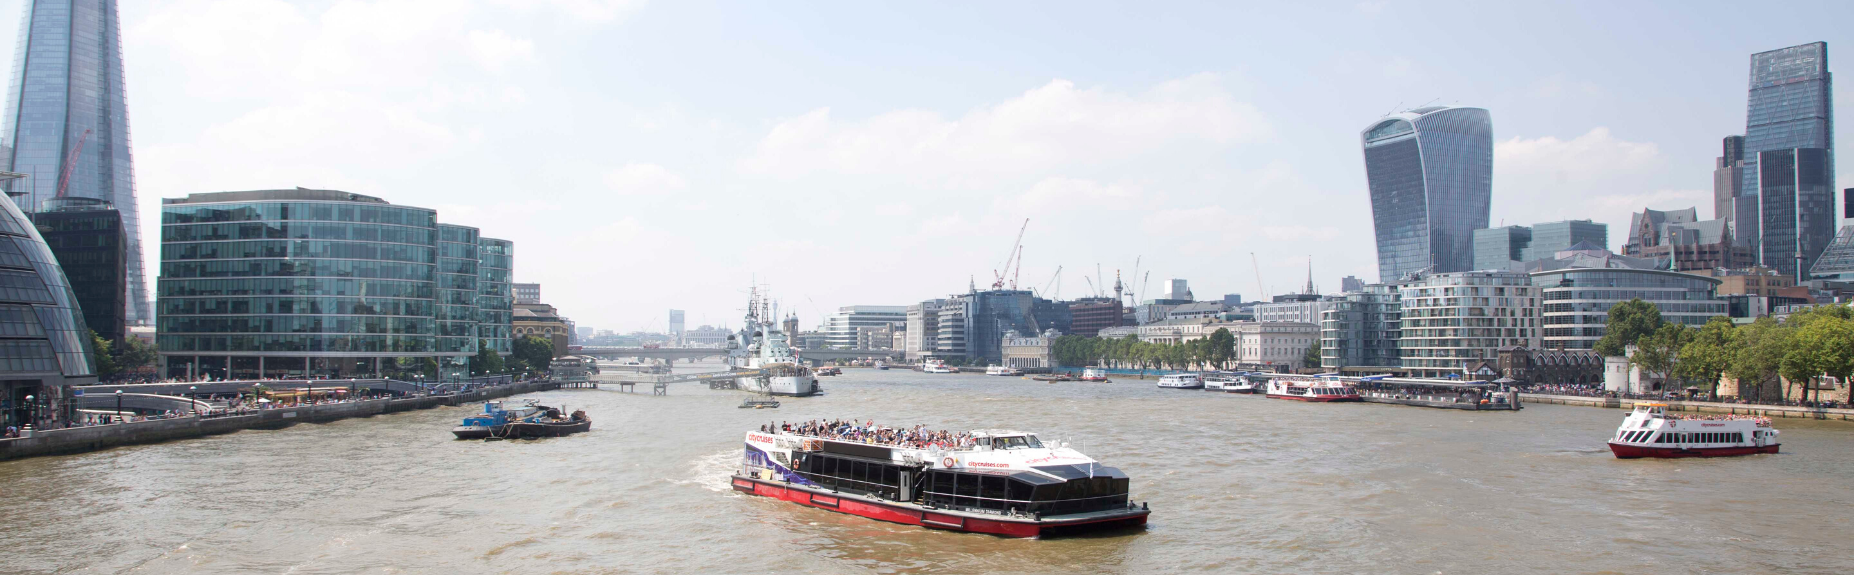 most-fun-river-cruises-london-header